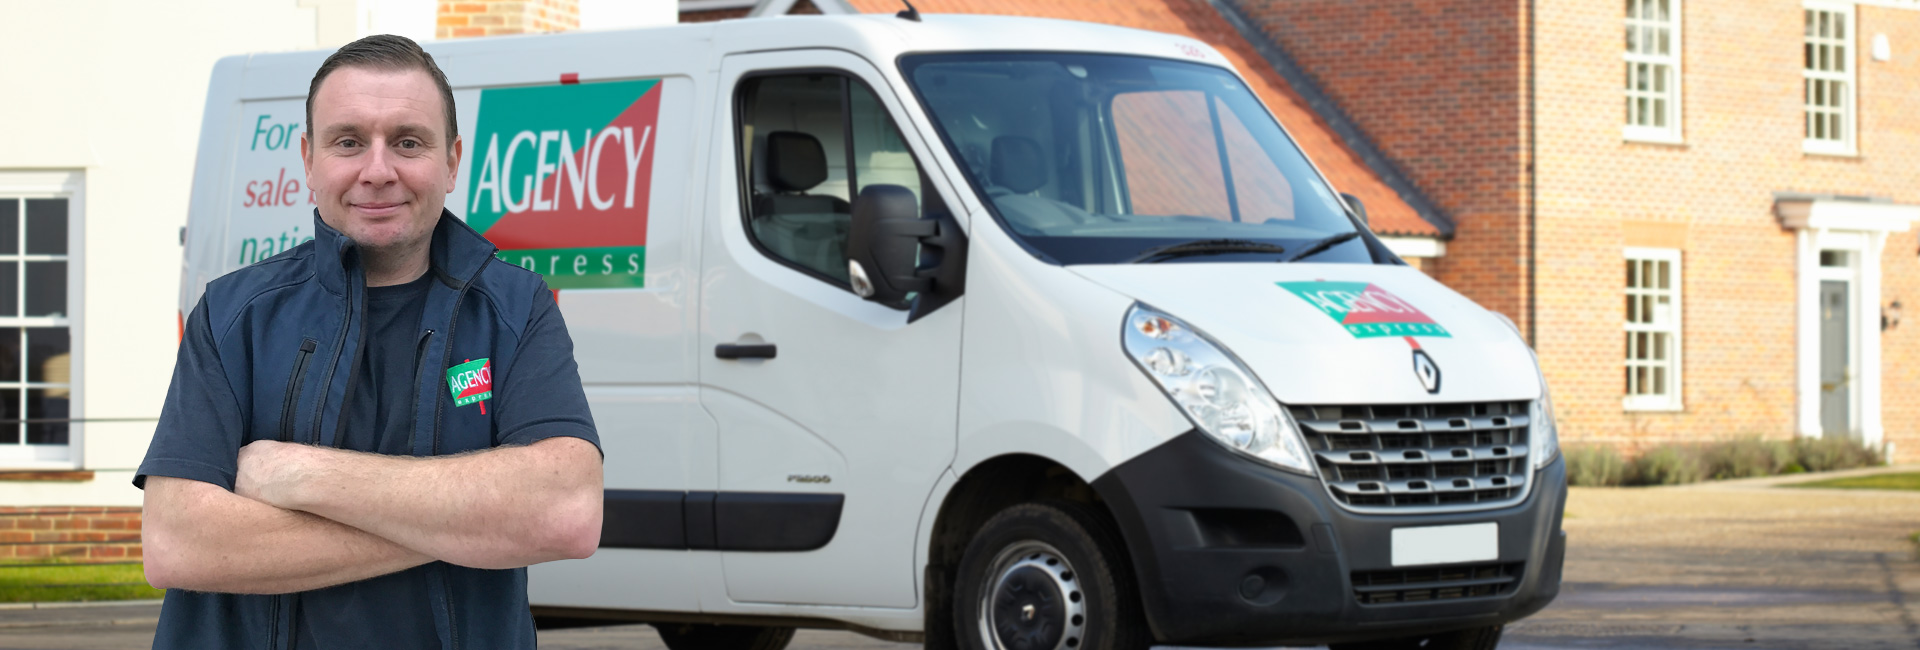 Agency Express franchise case study. Franchisee Steve Warren with van.